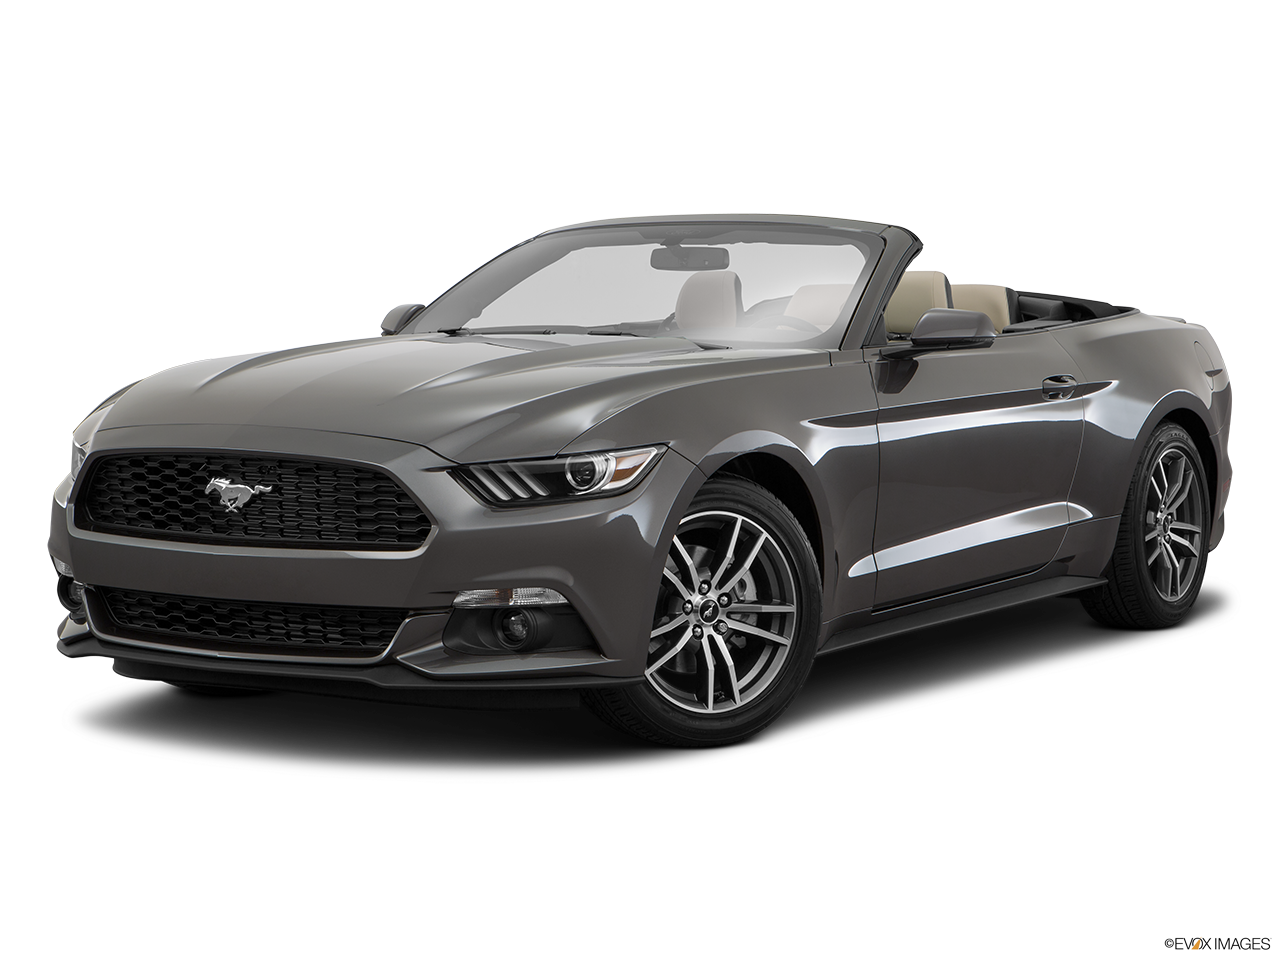 Test Drive A 2016 Ford Mustang at Hoffman Ford in Harrisburg